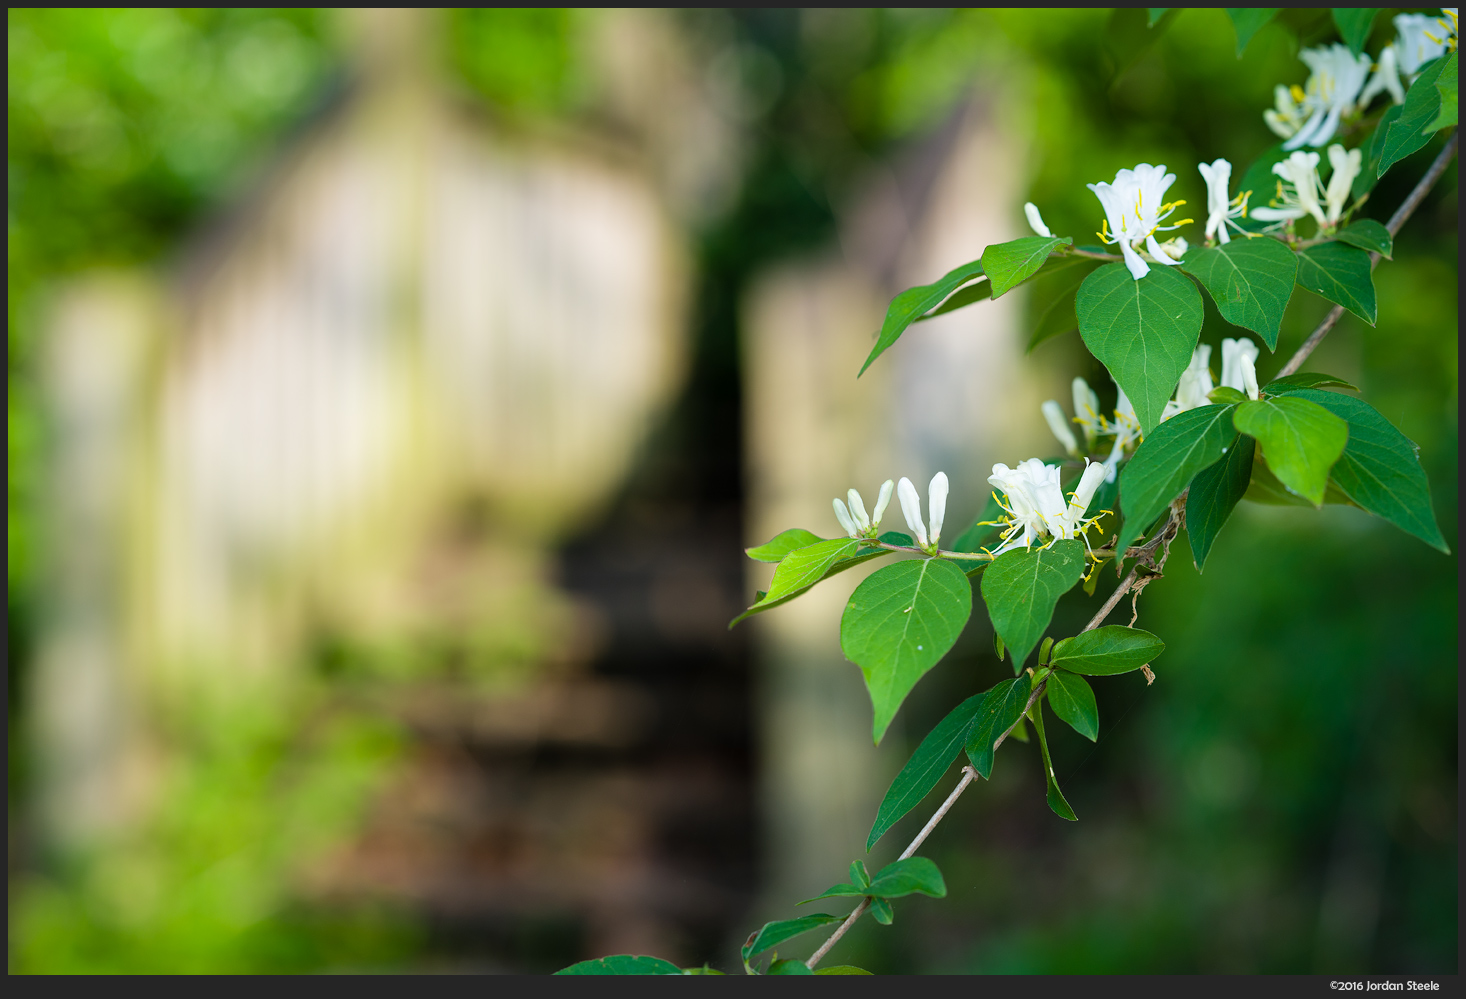 White Flowers - Sony A7 II with Sony 85mm f/1.4 GM @ f/3.5